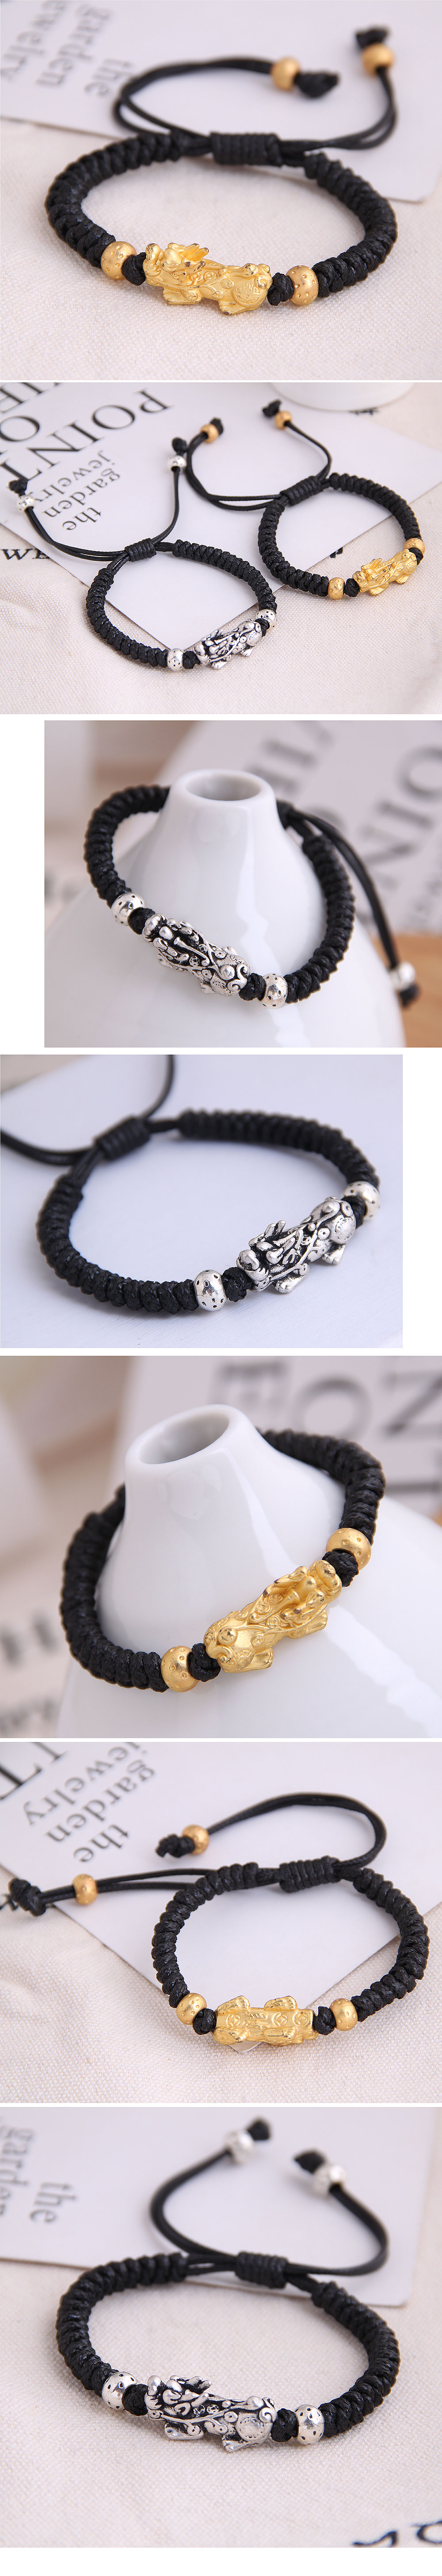 fashion retro trend concise unicorn braided temperament bracelet wholesale nihaojewelry NHSC221075